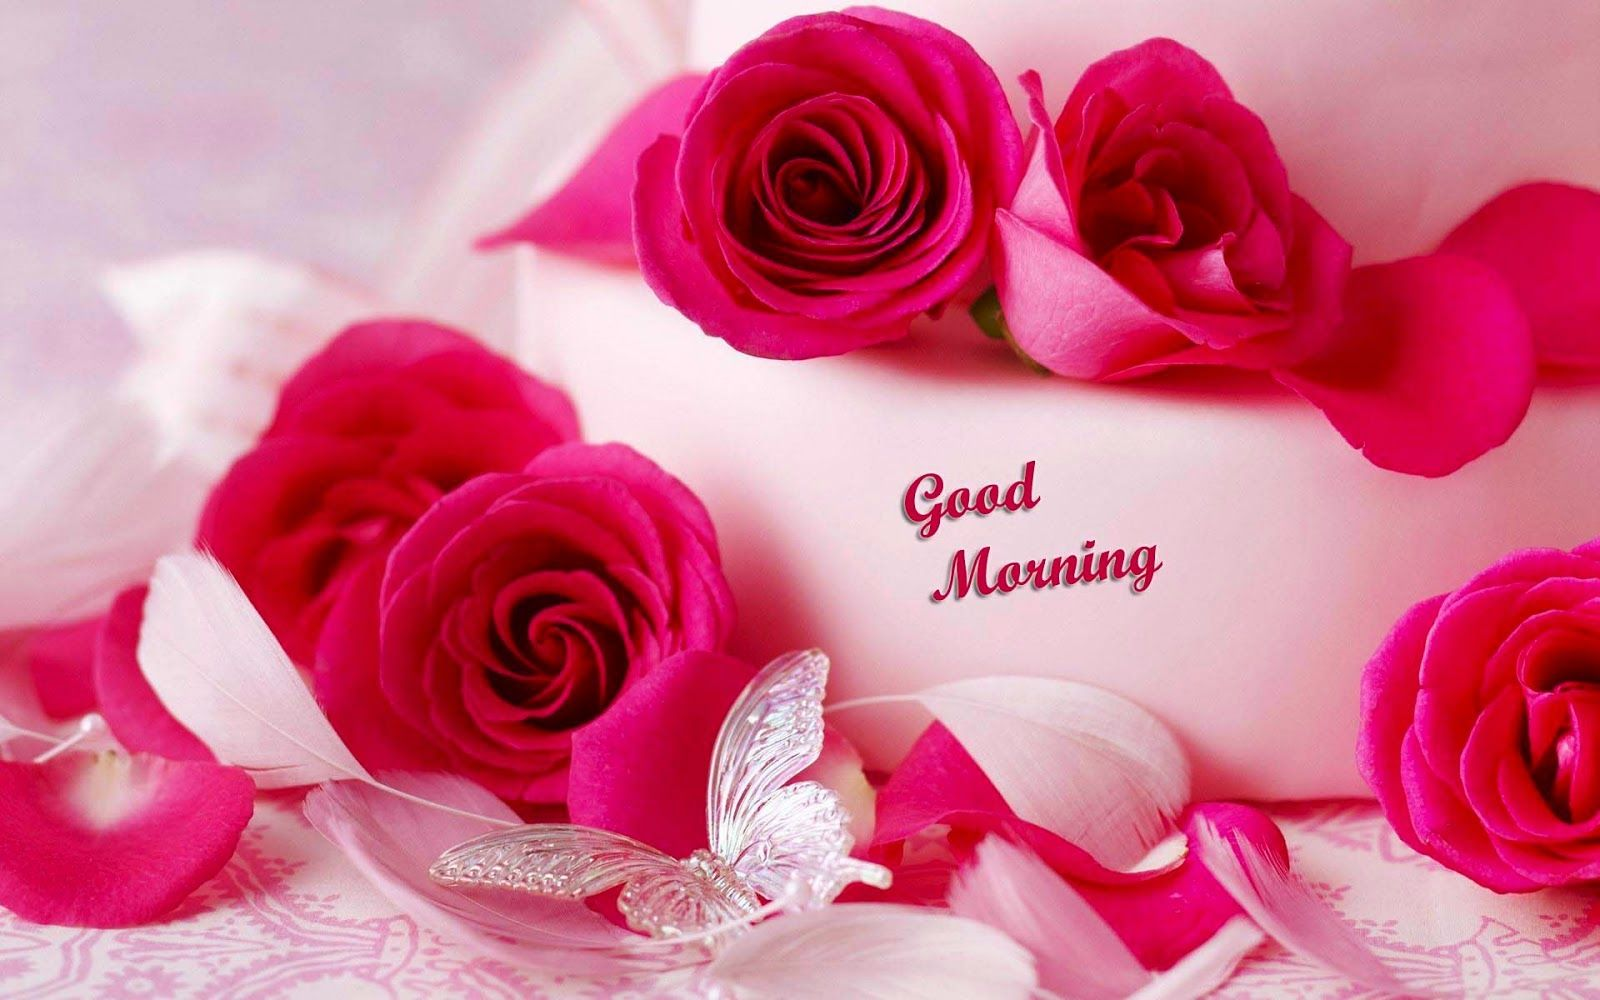 Good morning images with flowers gud morning flowers good good morning images with flowers gud morning flowers izmirmasajfo Choice Image